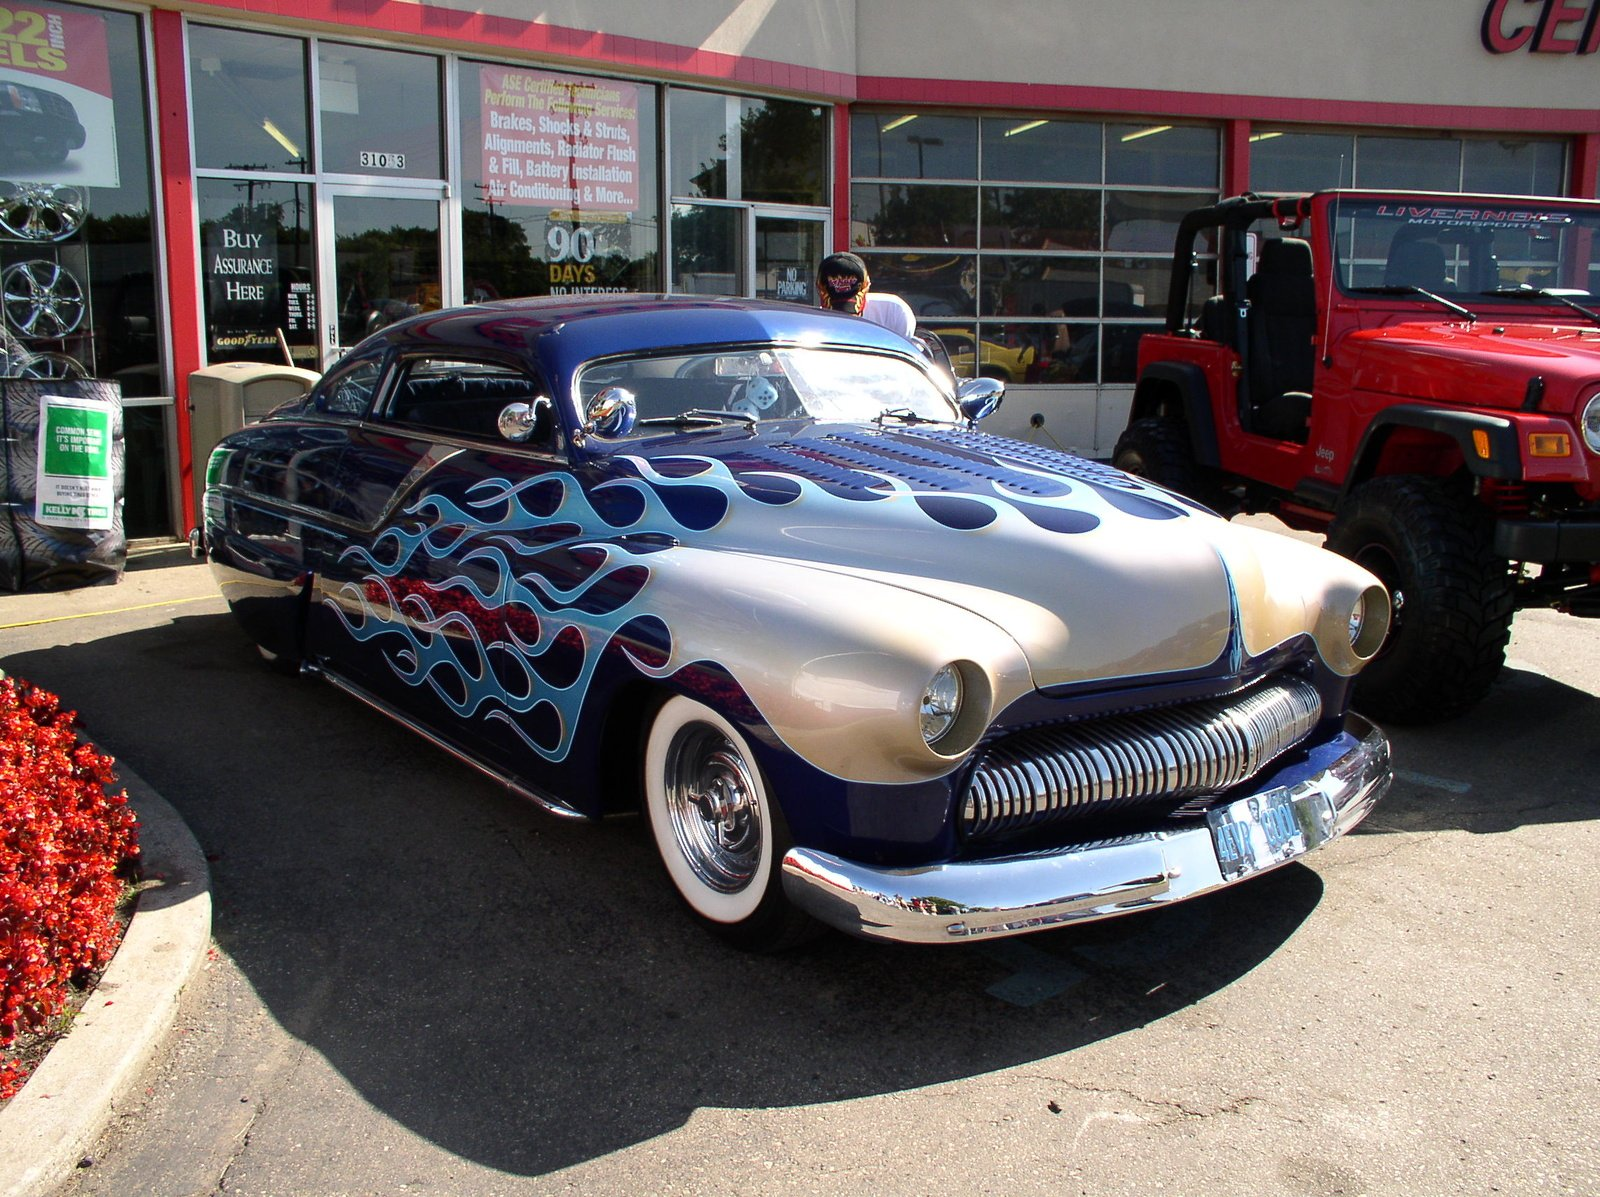 1950 mercury hotrod hot rod custom kustom old school usa. Black Bedroom Furniture Sets. Home Design Ideas